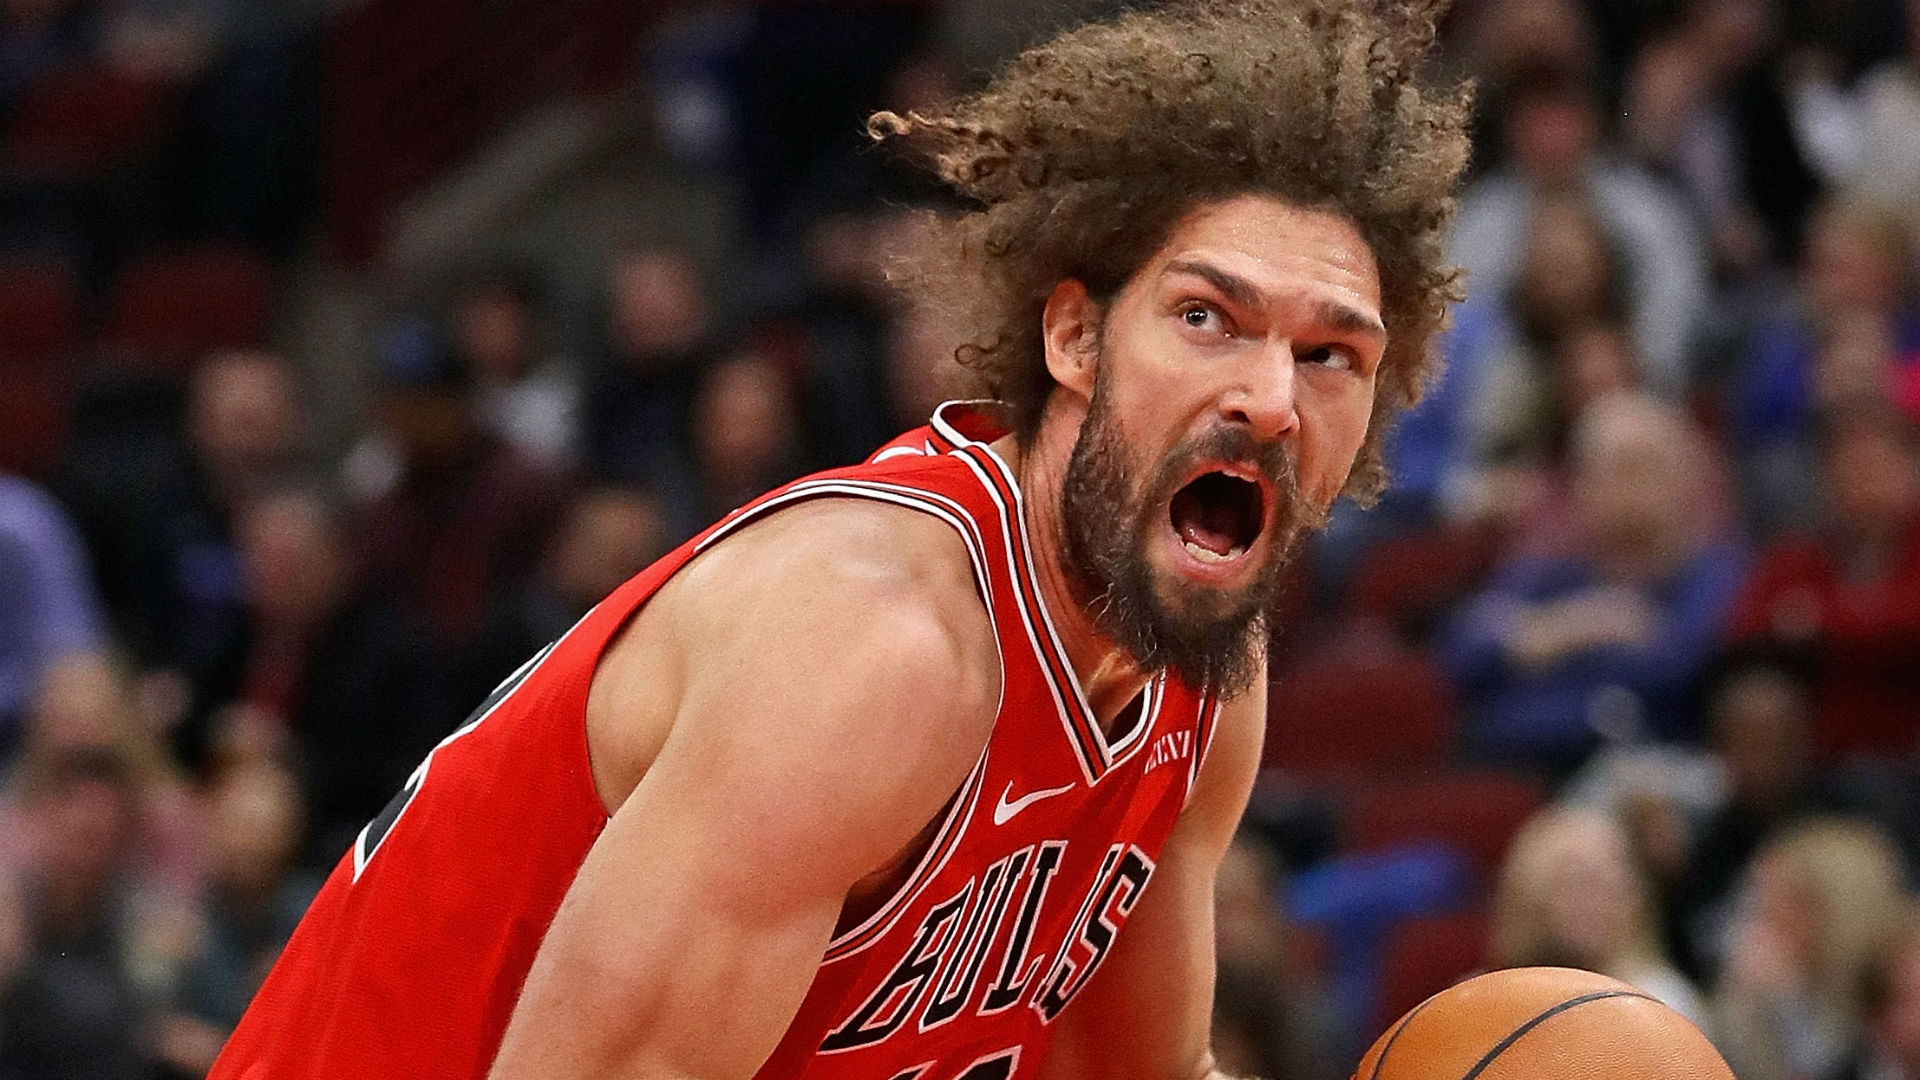 Thunder, Bulls involved in scuffle, Lopez later ejected